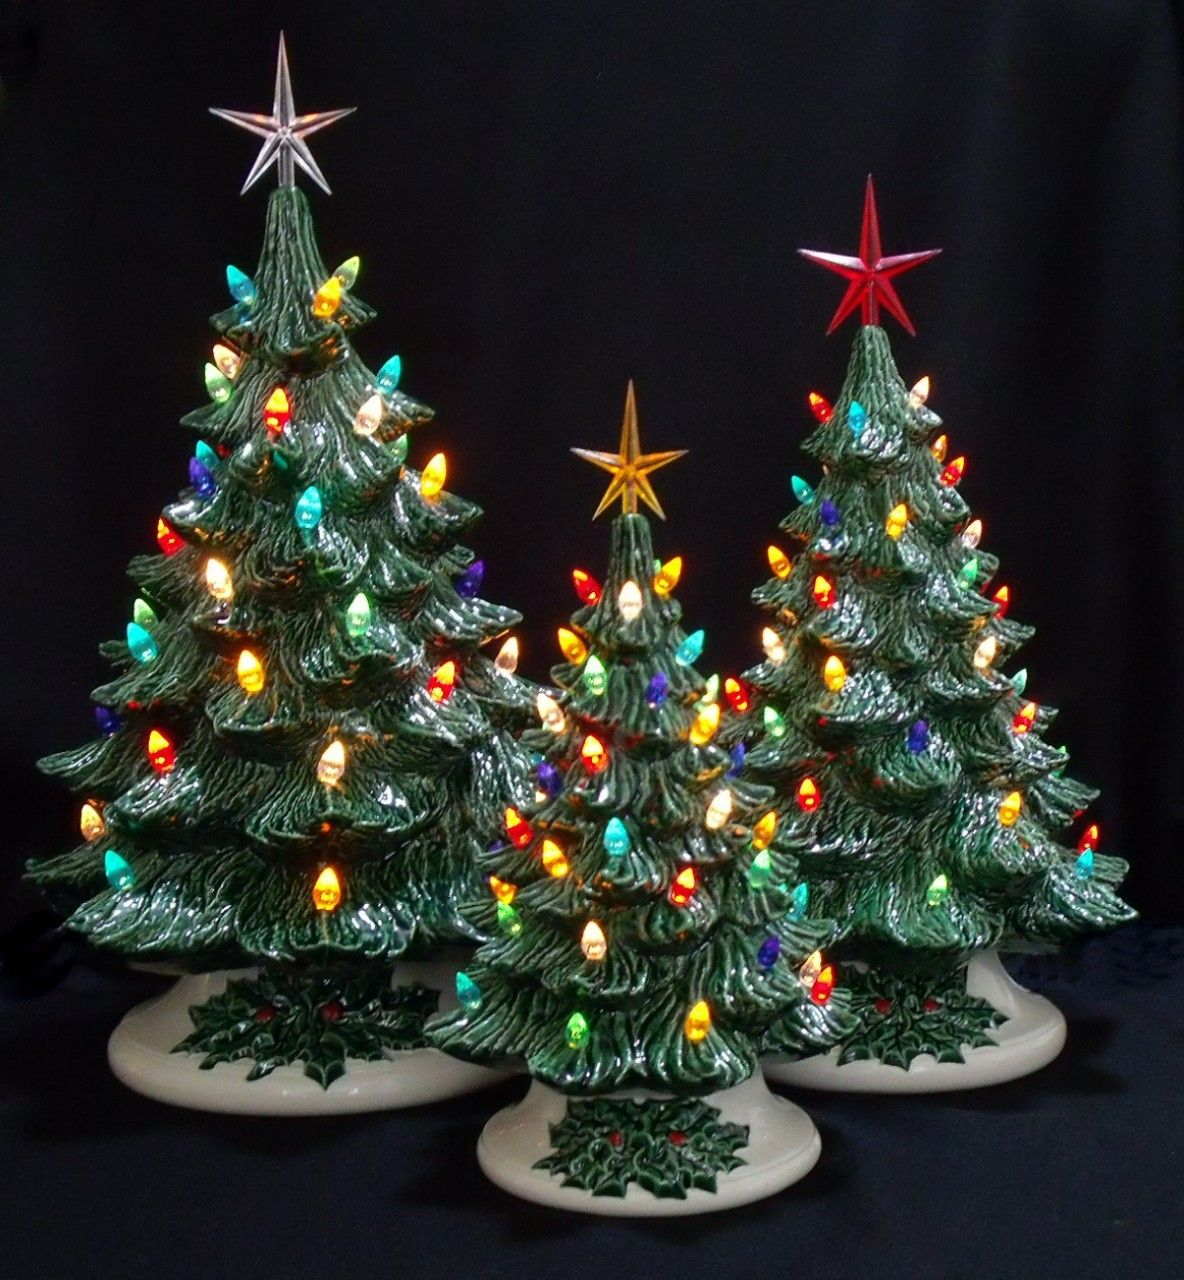 Ceramic Christmas Tree Decorations.Ceramic Christmas Trees Christmas Vintage Ceramic